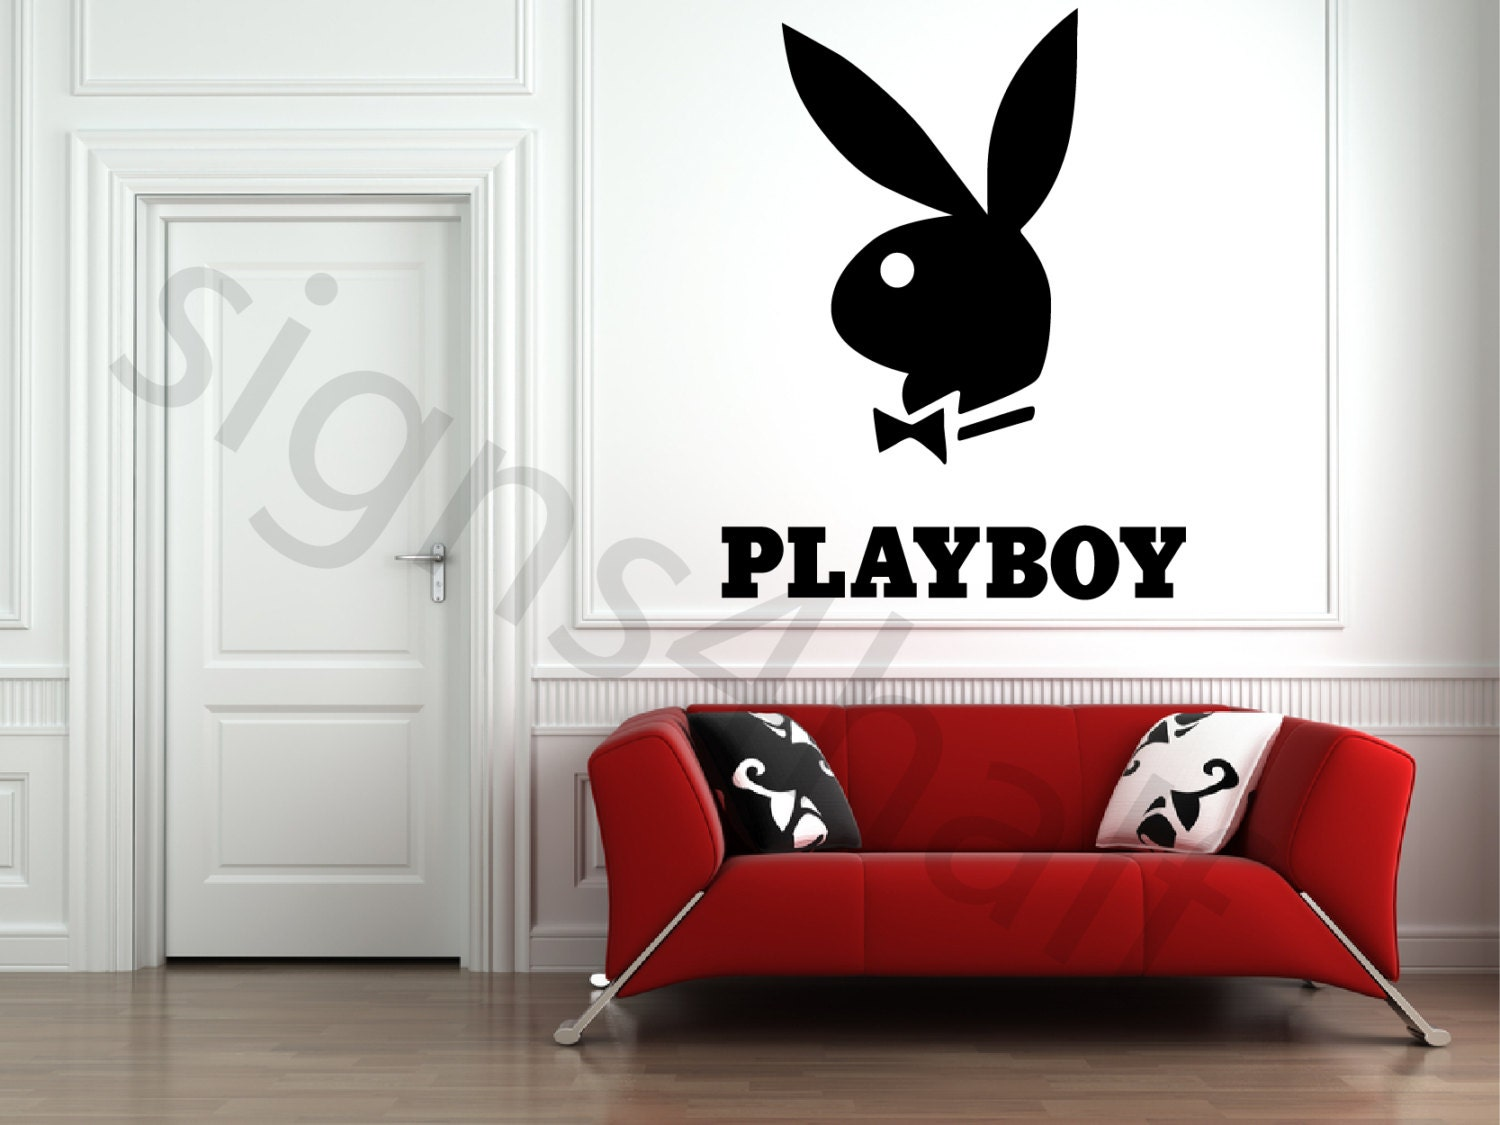 Playboy Logo Removable Wall Art Decor Decal Mural Vinyl